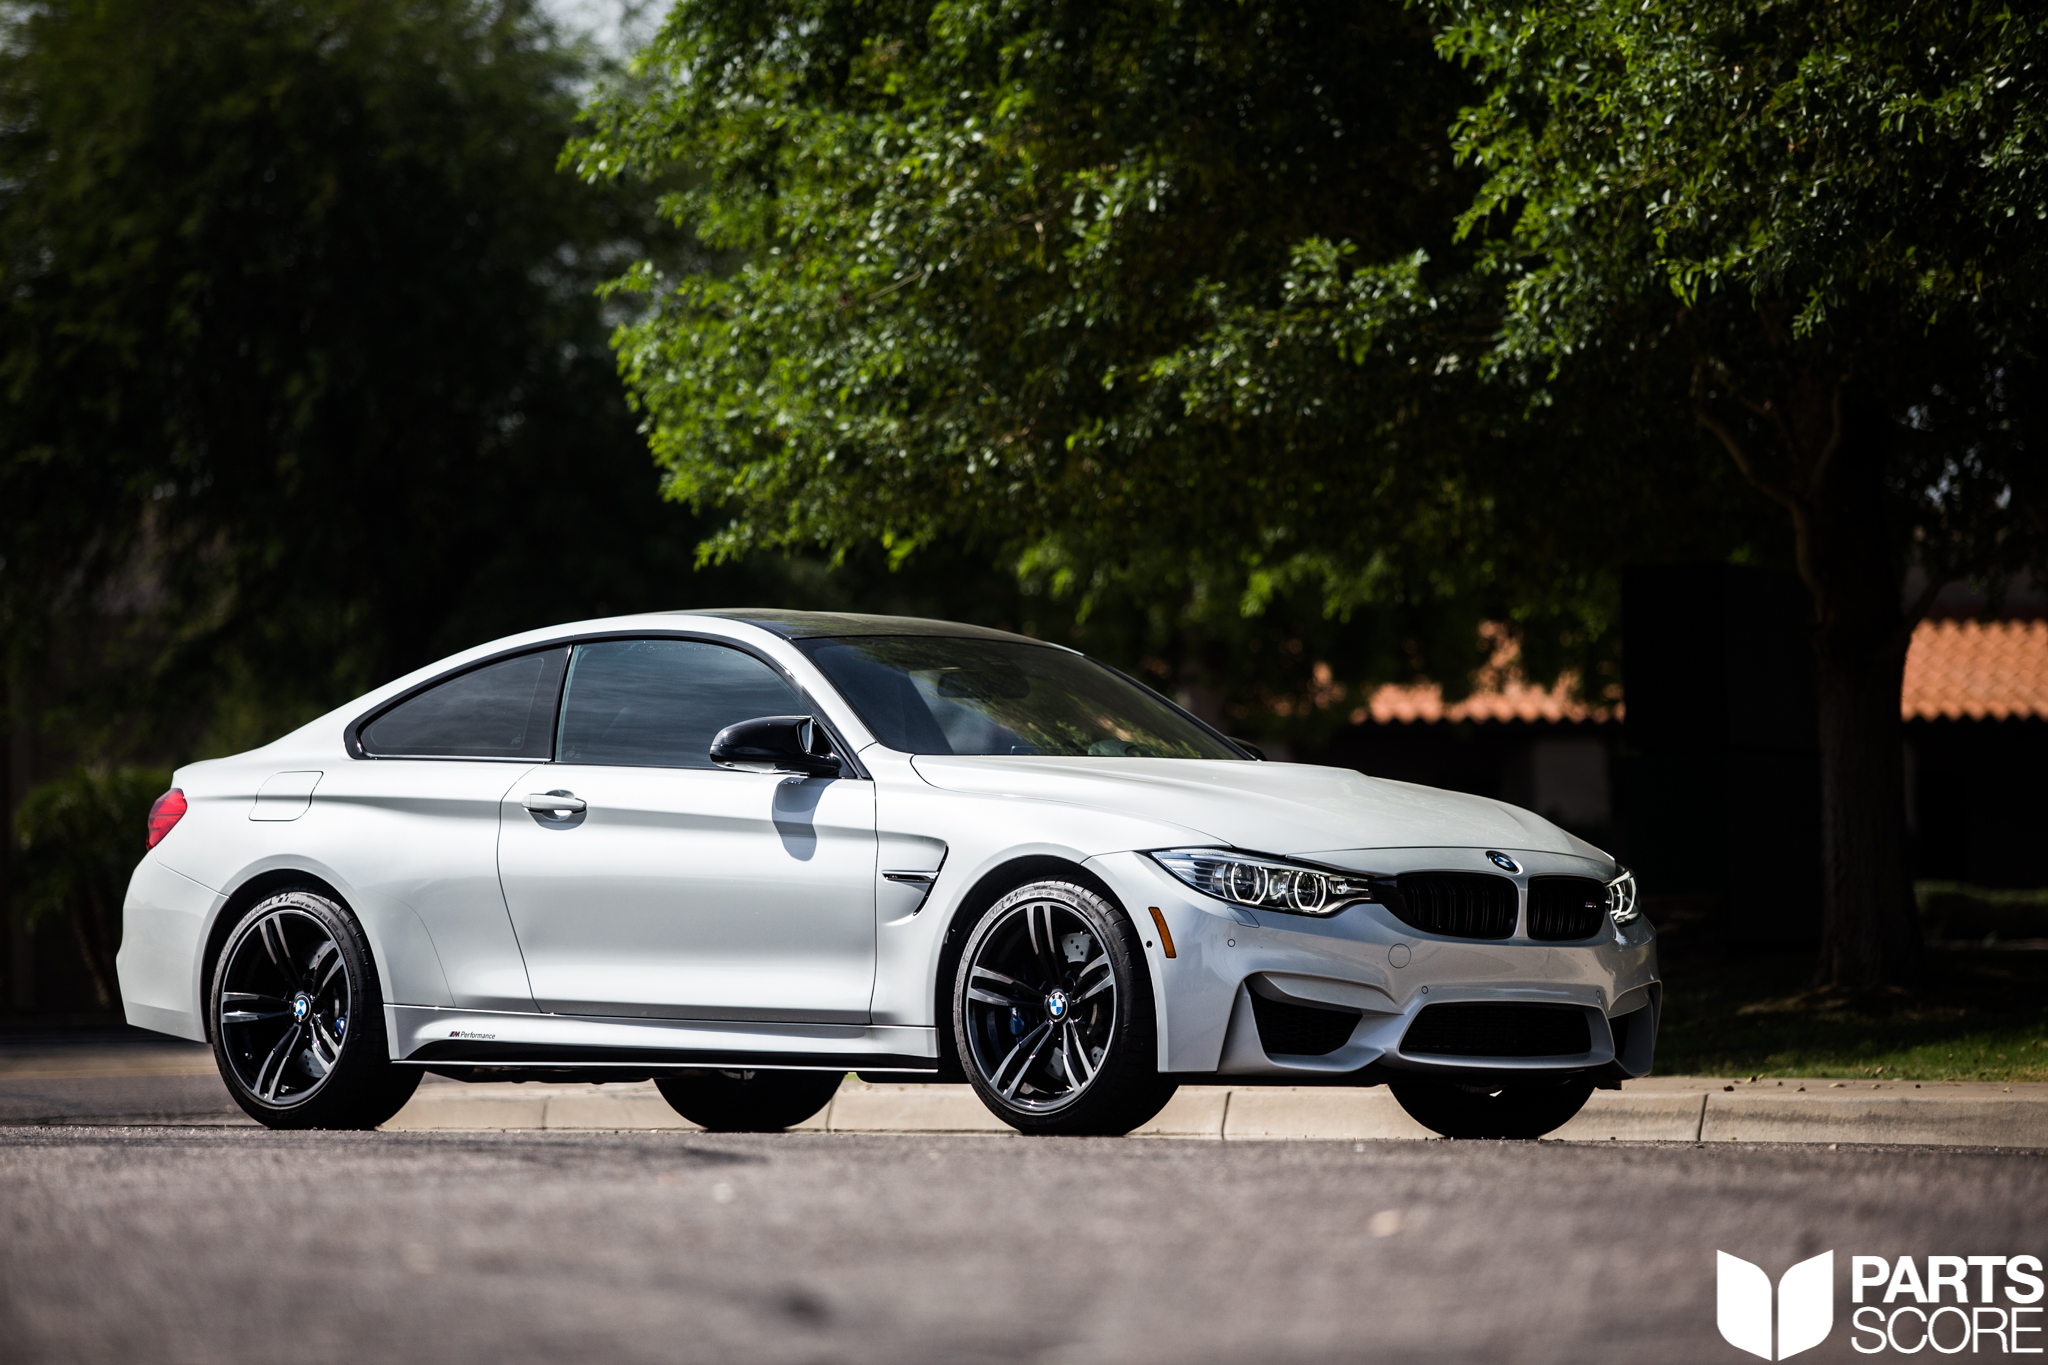 335i, 335i pure turbo, 335i pure turbos, 335i pure turbos for sale, 335i turbo upgrade, 335i turbo upgrades, amp, arizona motorsports, BMW, bmw m, bmw m performance, bmw m power, bmw m2, bmw m3, BMW M4, bmw performance, bmw pure turbos, bmw pure turbos installation, bmwf80, bmwf82, bmwf83, bmwf8x, bmwgram, bmwgramm, bmwm, bmwm3, bmwm4, bmwmods, bmwmperformance, bmwmpower, boost, buy bmw pure turbo, buy pure turbo, buy pure turbos, e60, install pure turbo, n54, n54 pure turbo, n55, n55 pure turbo, parts score, partsscore, peoria, phoenix, pure turbo installation, pure turbo scottsdale, pure turbo upgrade, pure turbos, pure turbos az, pure turbos bmw, pure turbos california, pure turbos scottsdale, race car, racecar, s55, s55 pure turbo, scottsdale, scottsdale az, tempe, turbos for sale, wheelgame